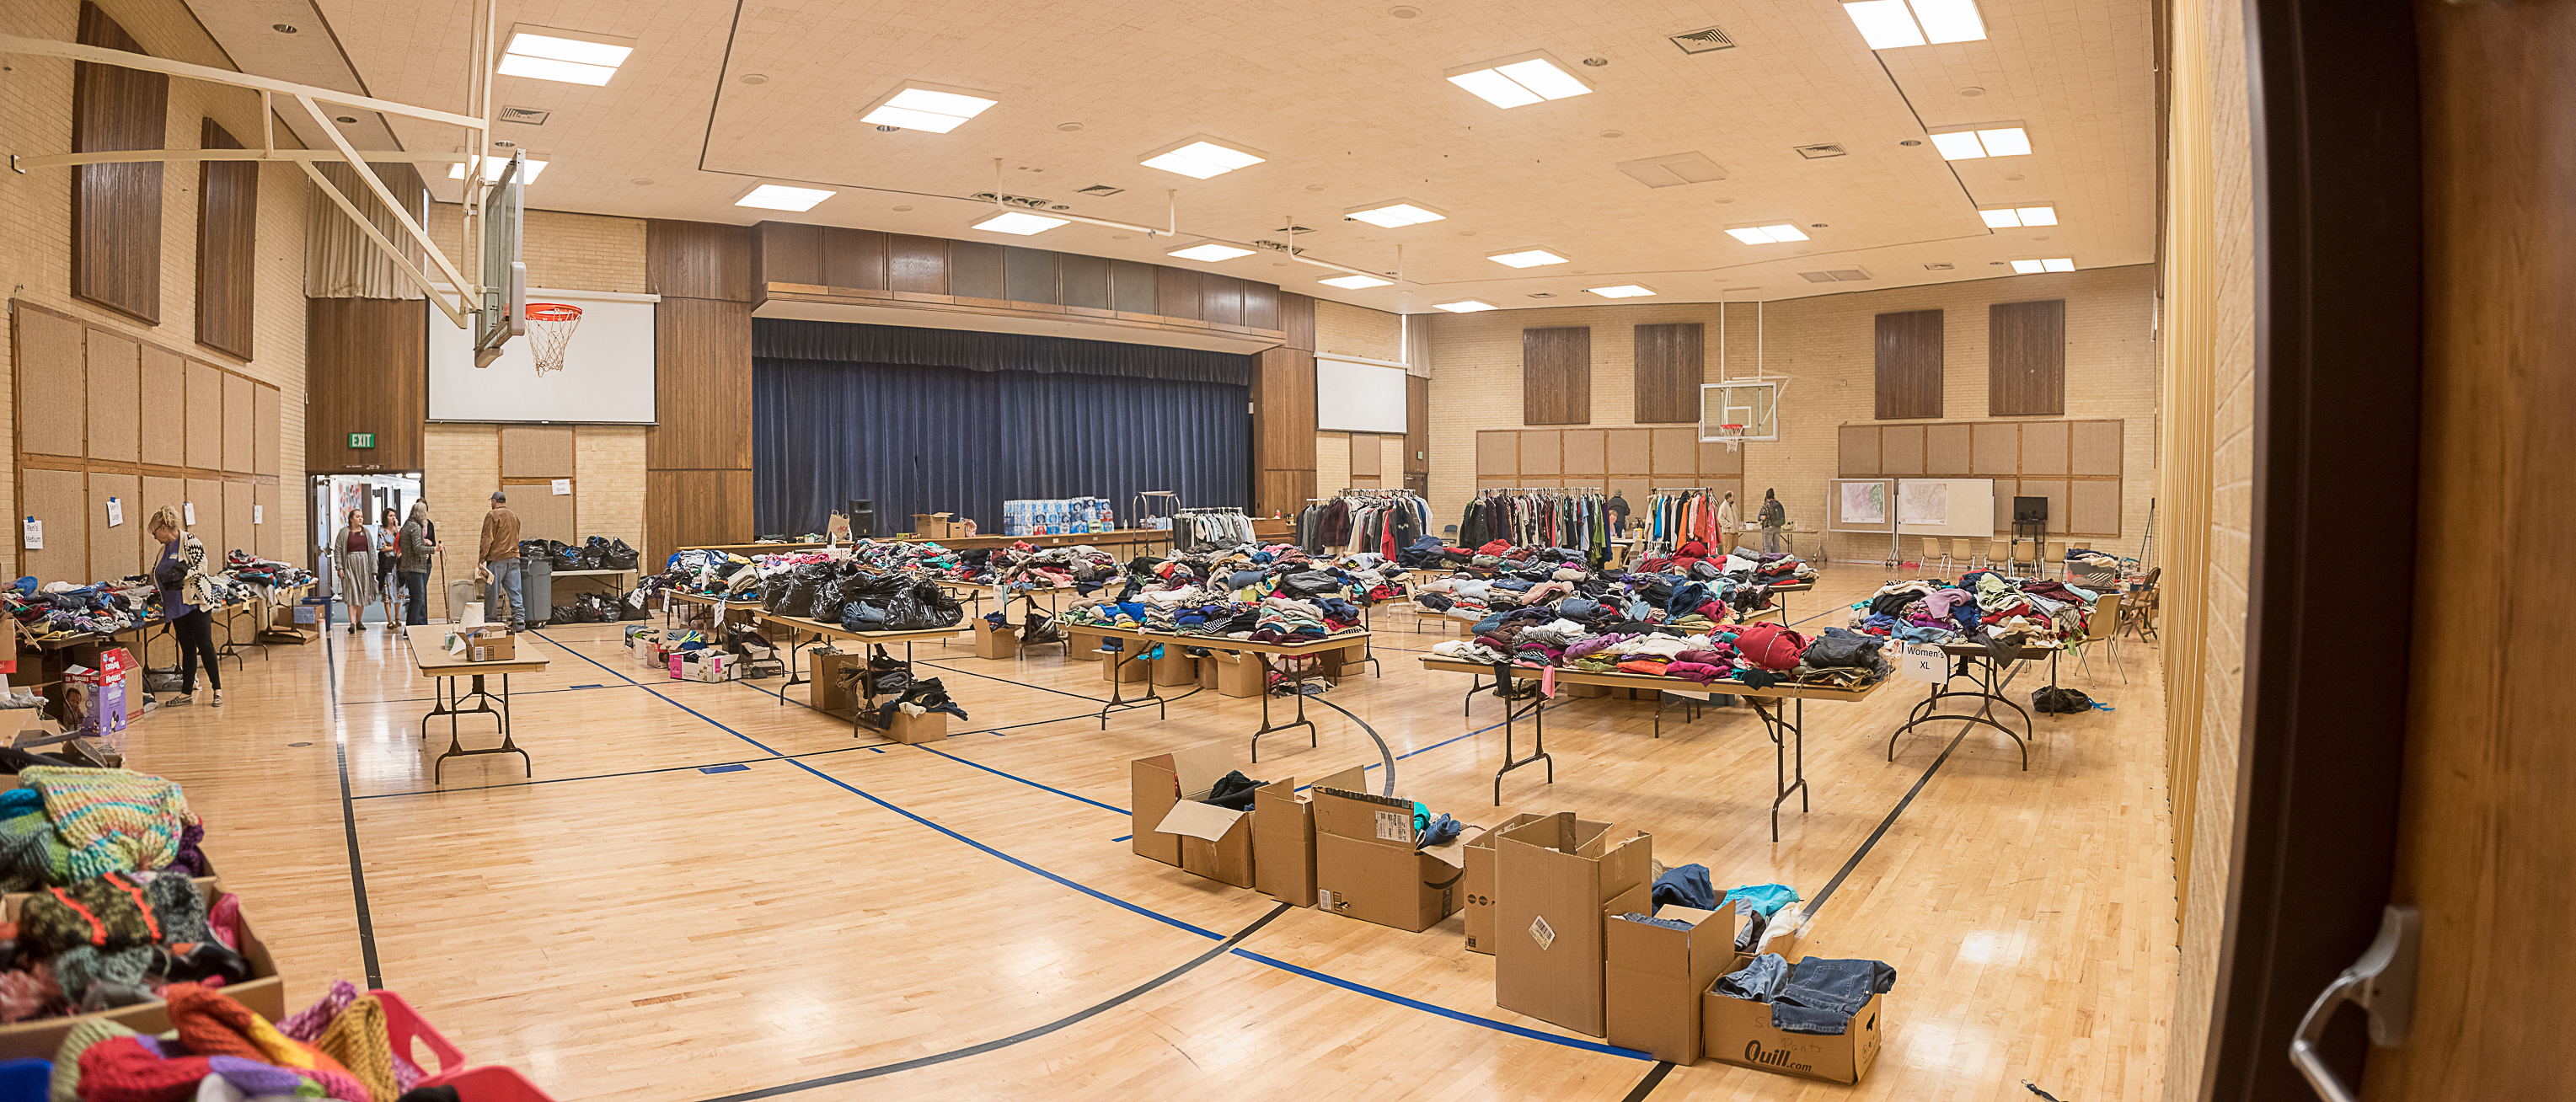 Clothing and other supplies are gathered at a local Latter-day Saint meetinghouse for distribution to those in the community impacted by the wildfire that heavily damaged Paradise, California, on Nov. 16, 2018.